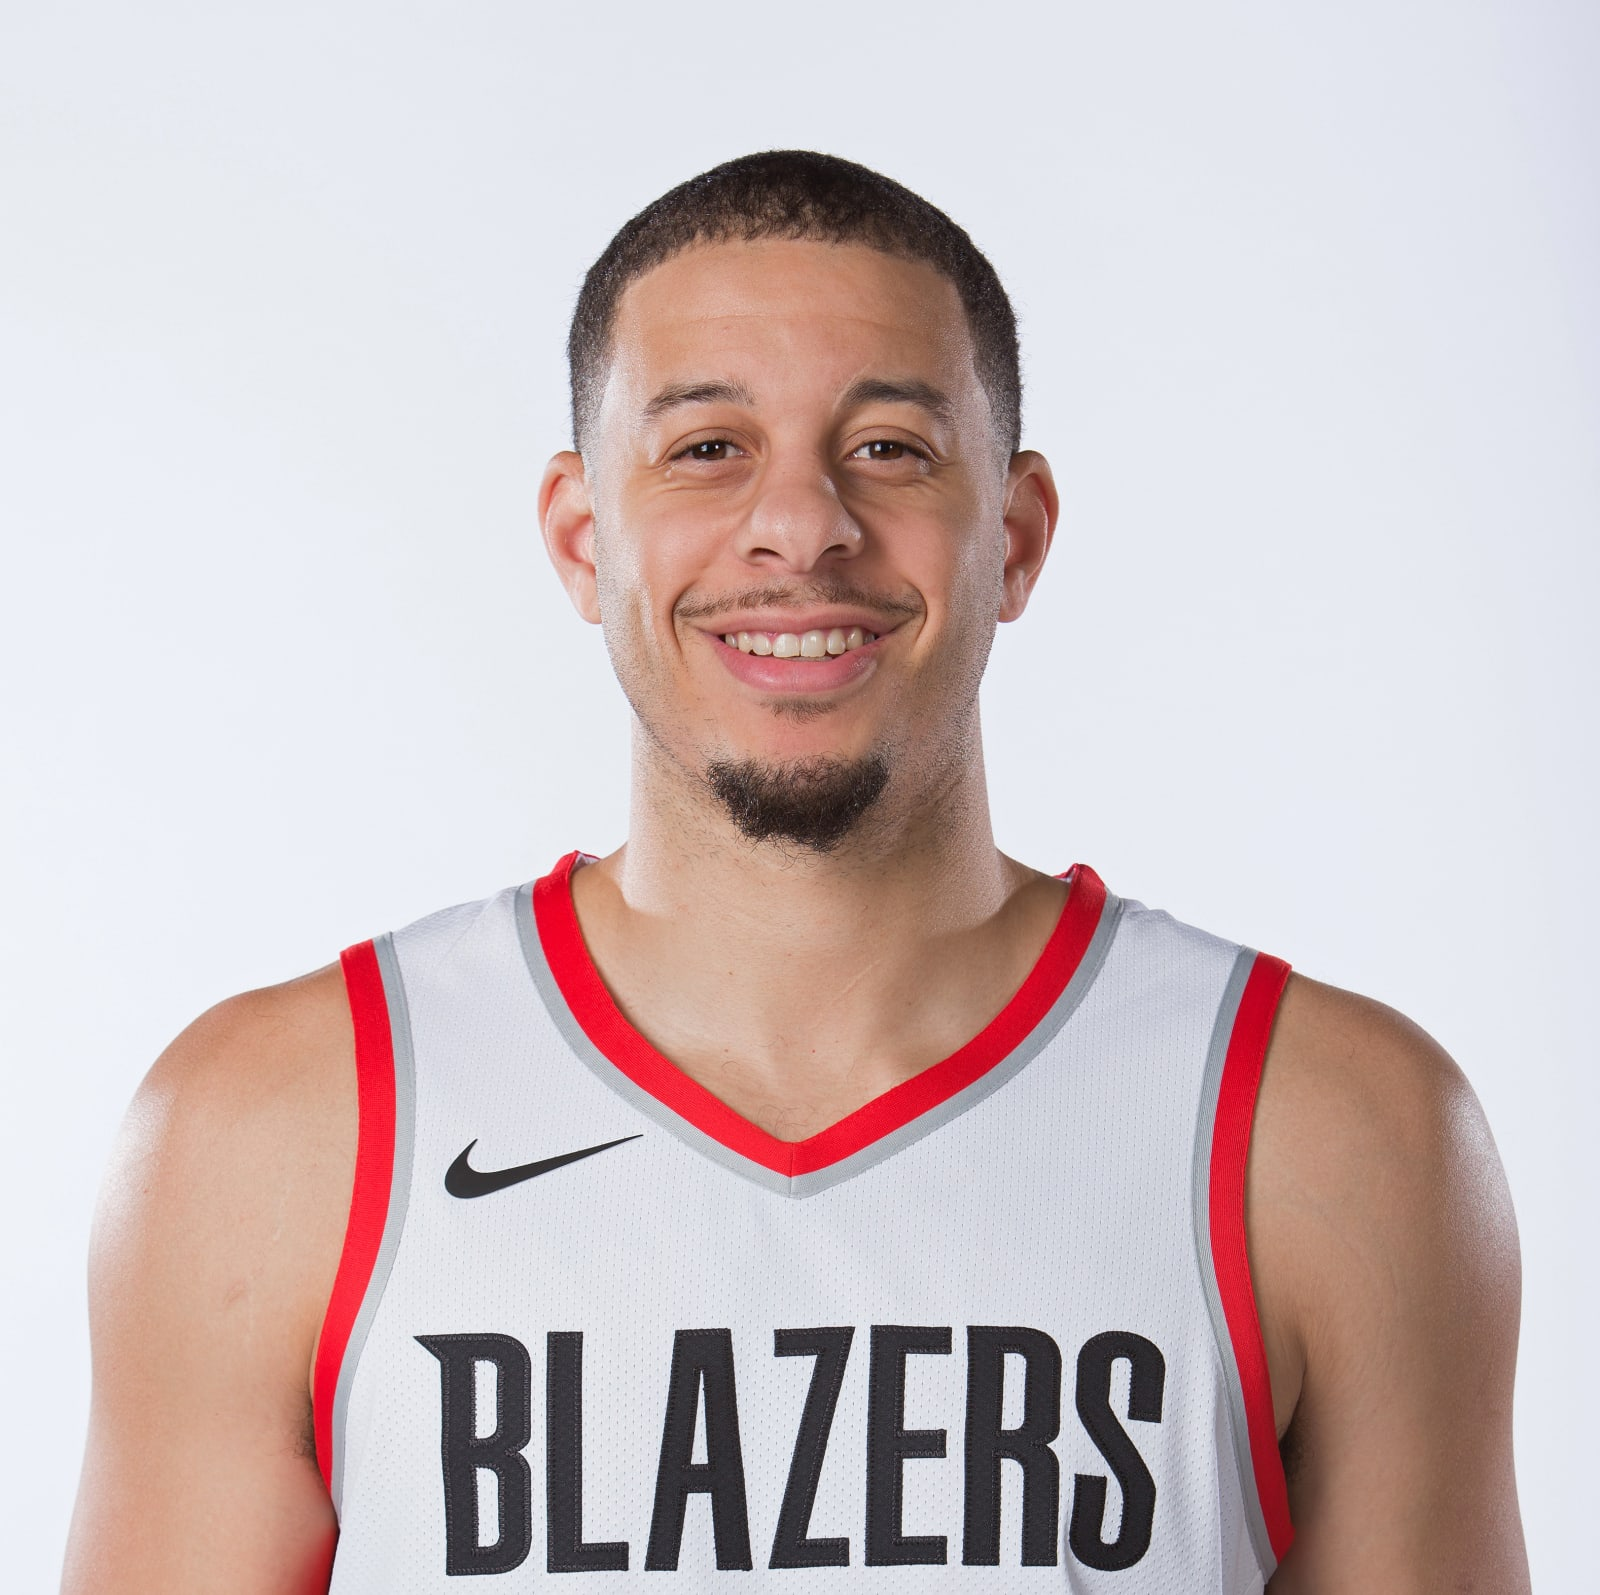 Blazers 5 Goals For Seth Curry In His First Season Back From Injury